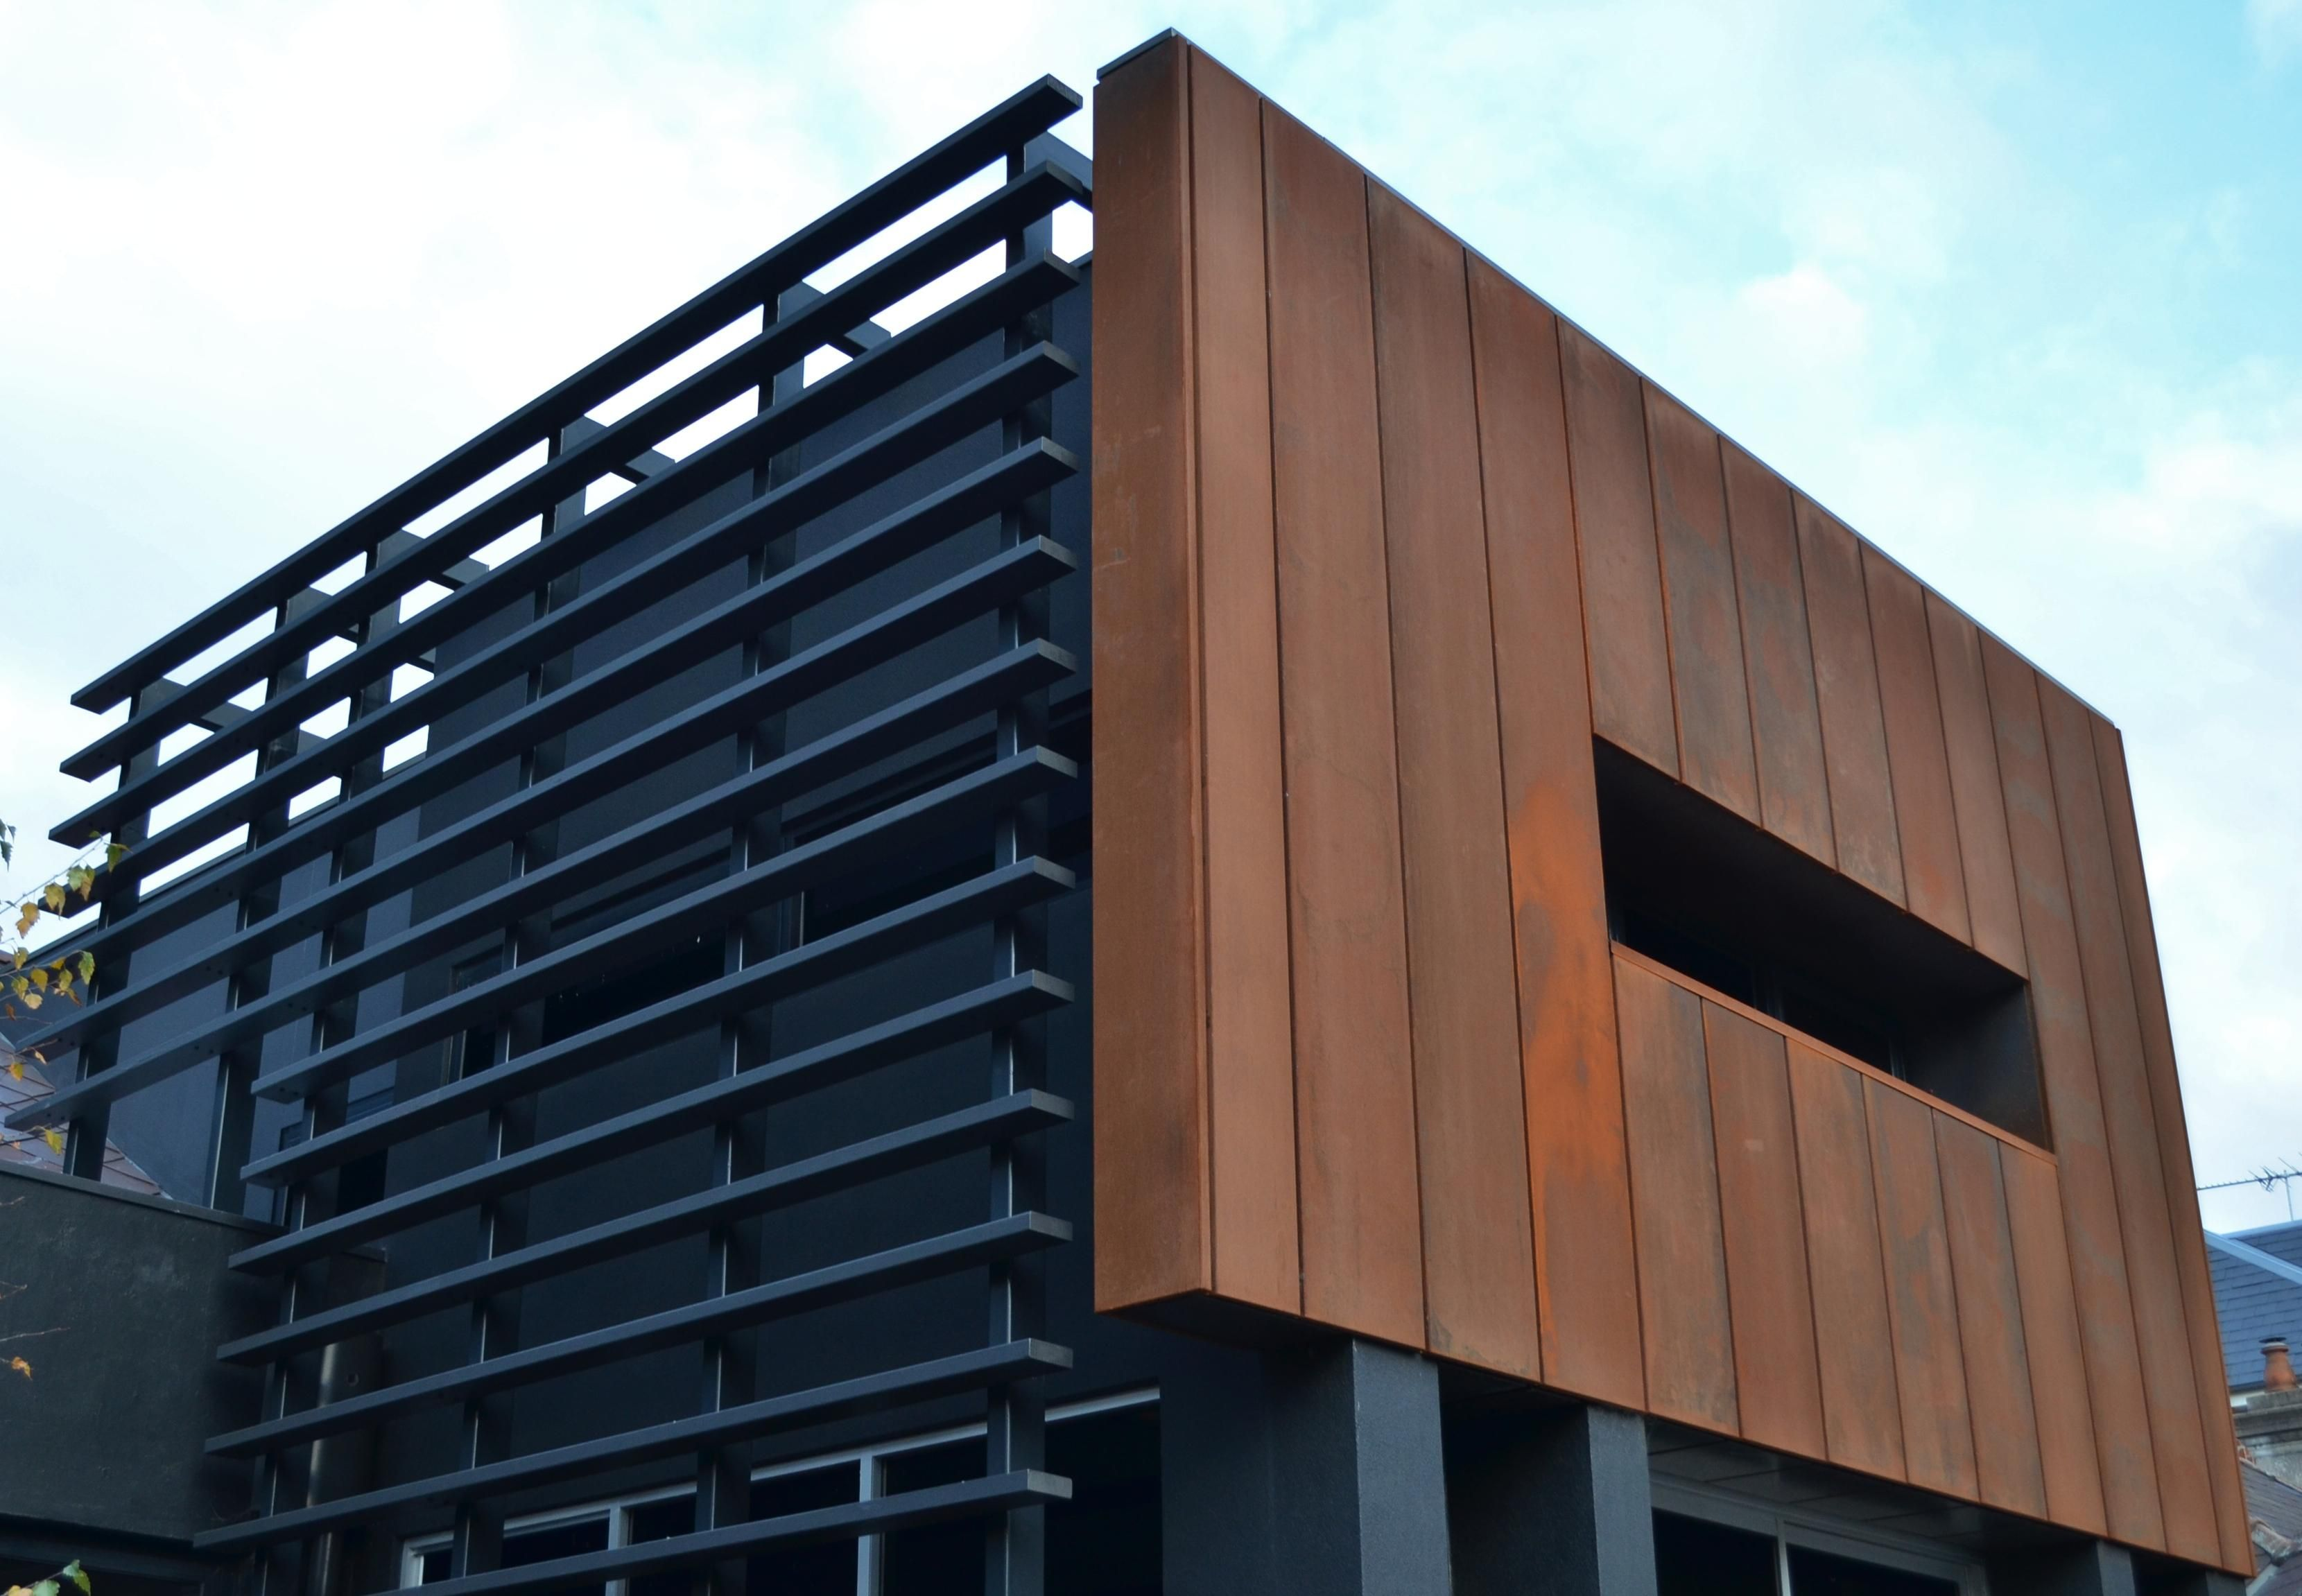 Cassette Panel Copper Exterior Wall Cladding House Cladding Steel Cladding